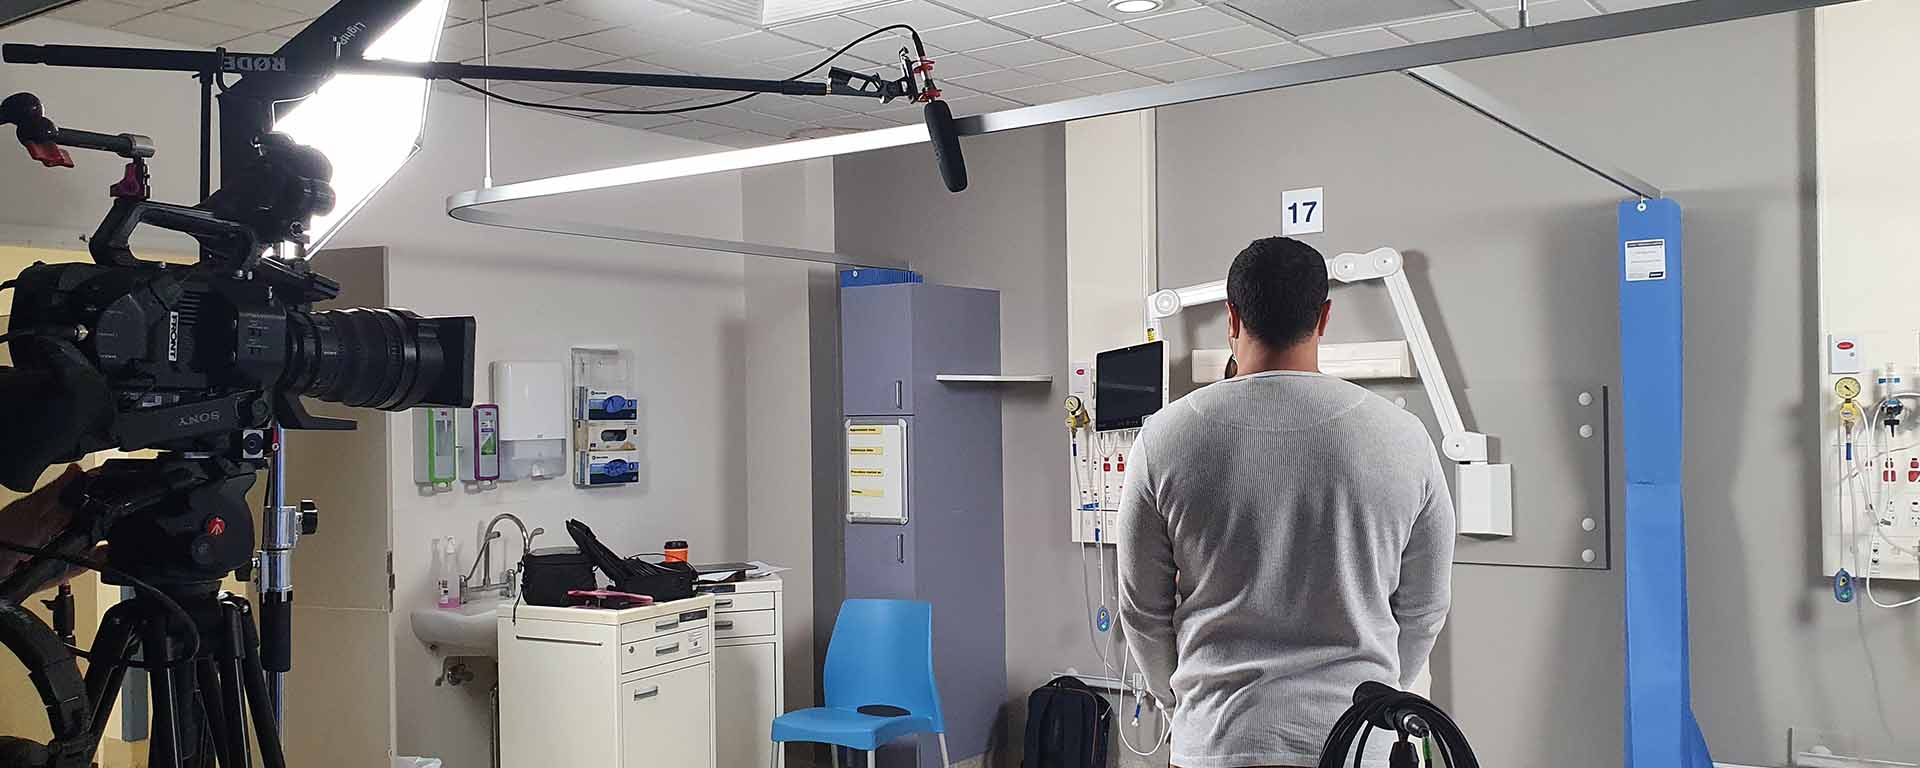 Man stands with his back to the audience, in the middle of a hospital room. A large camera is on the left hand side